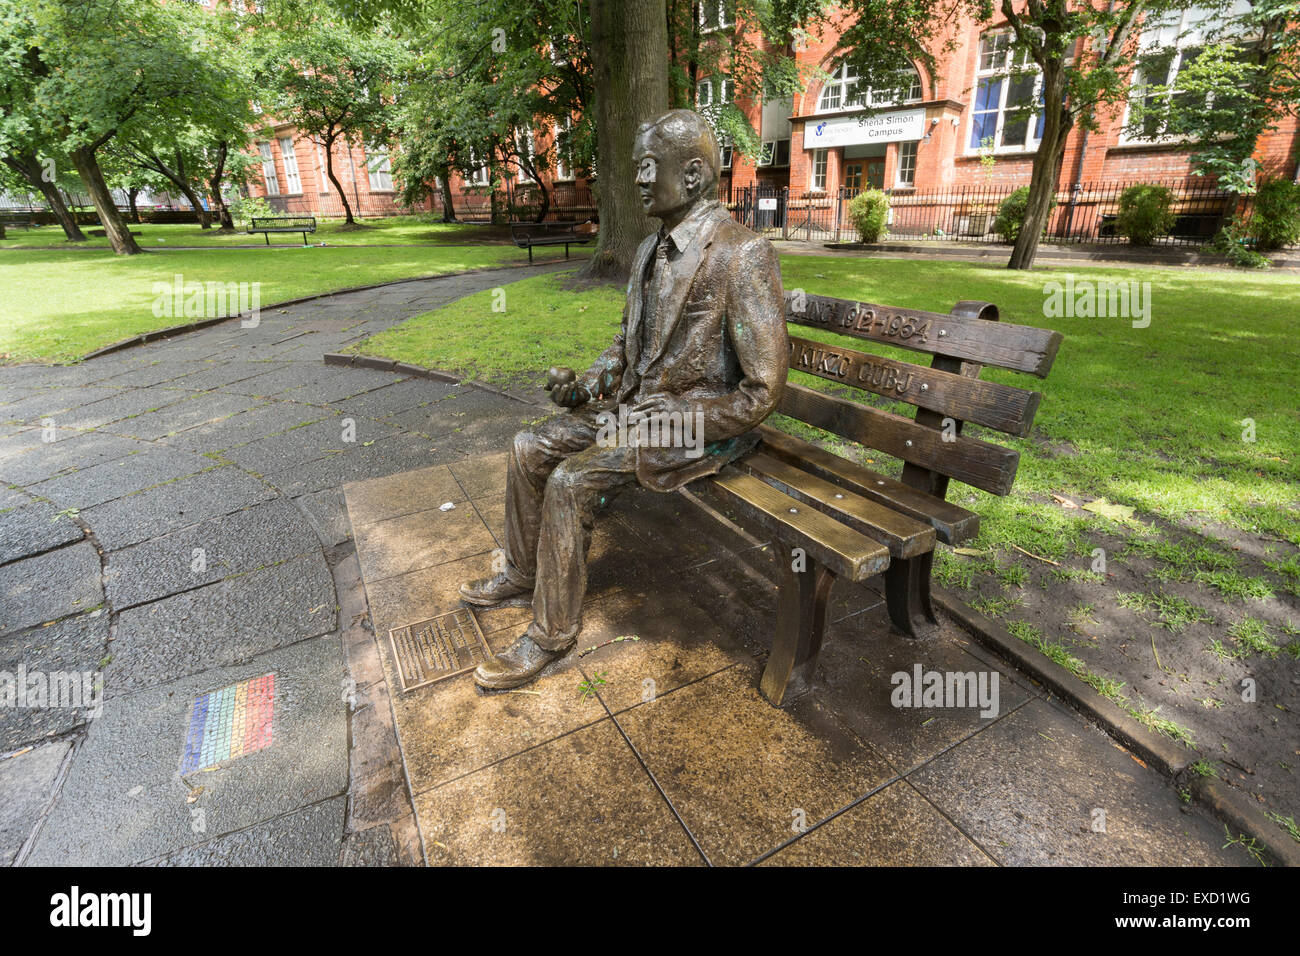 Alan Turing Memorial in Manchester,England. - Stock Image